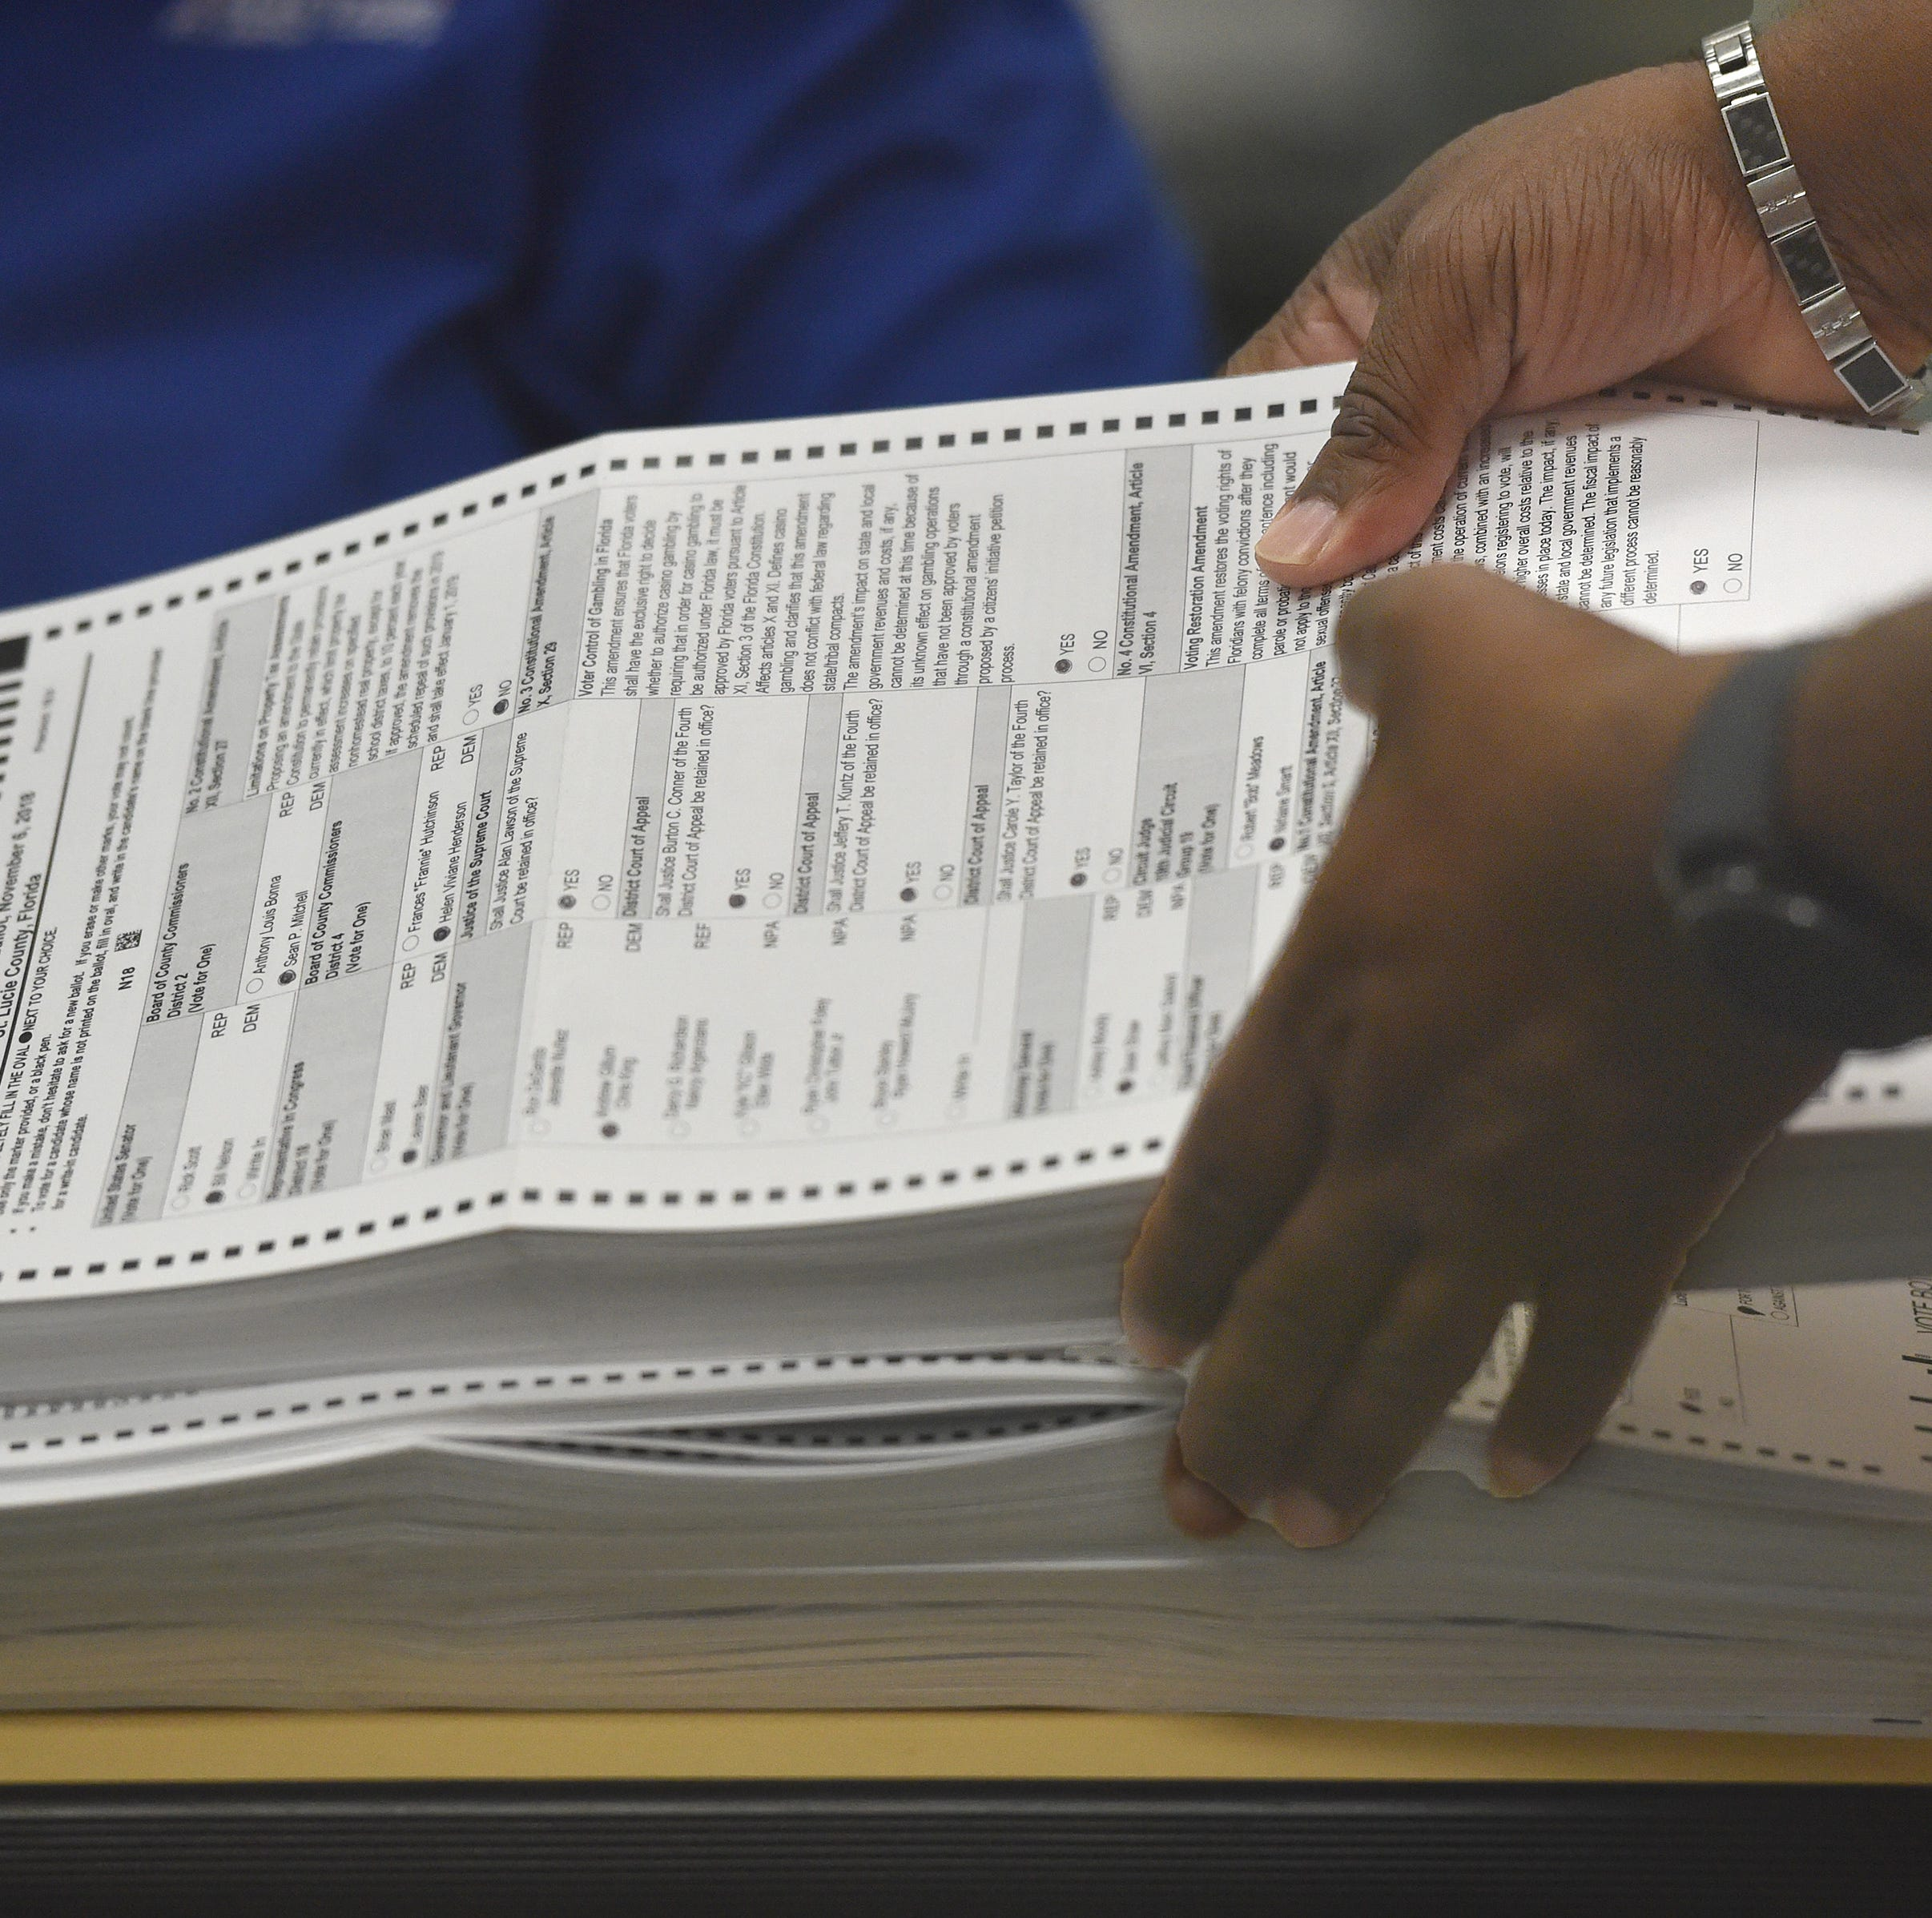 Florida recount update: Machine recounts underway. Some counties might not finish in time